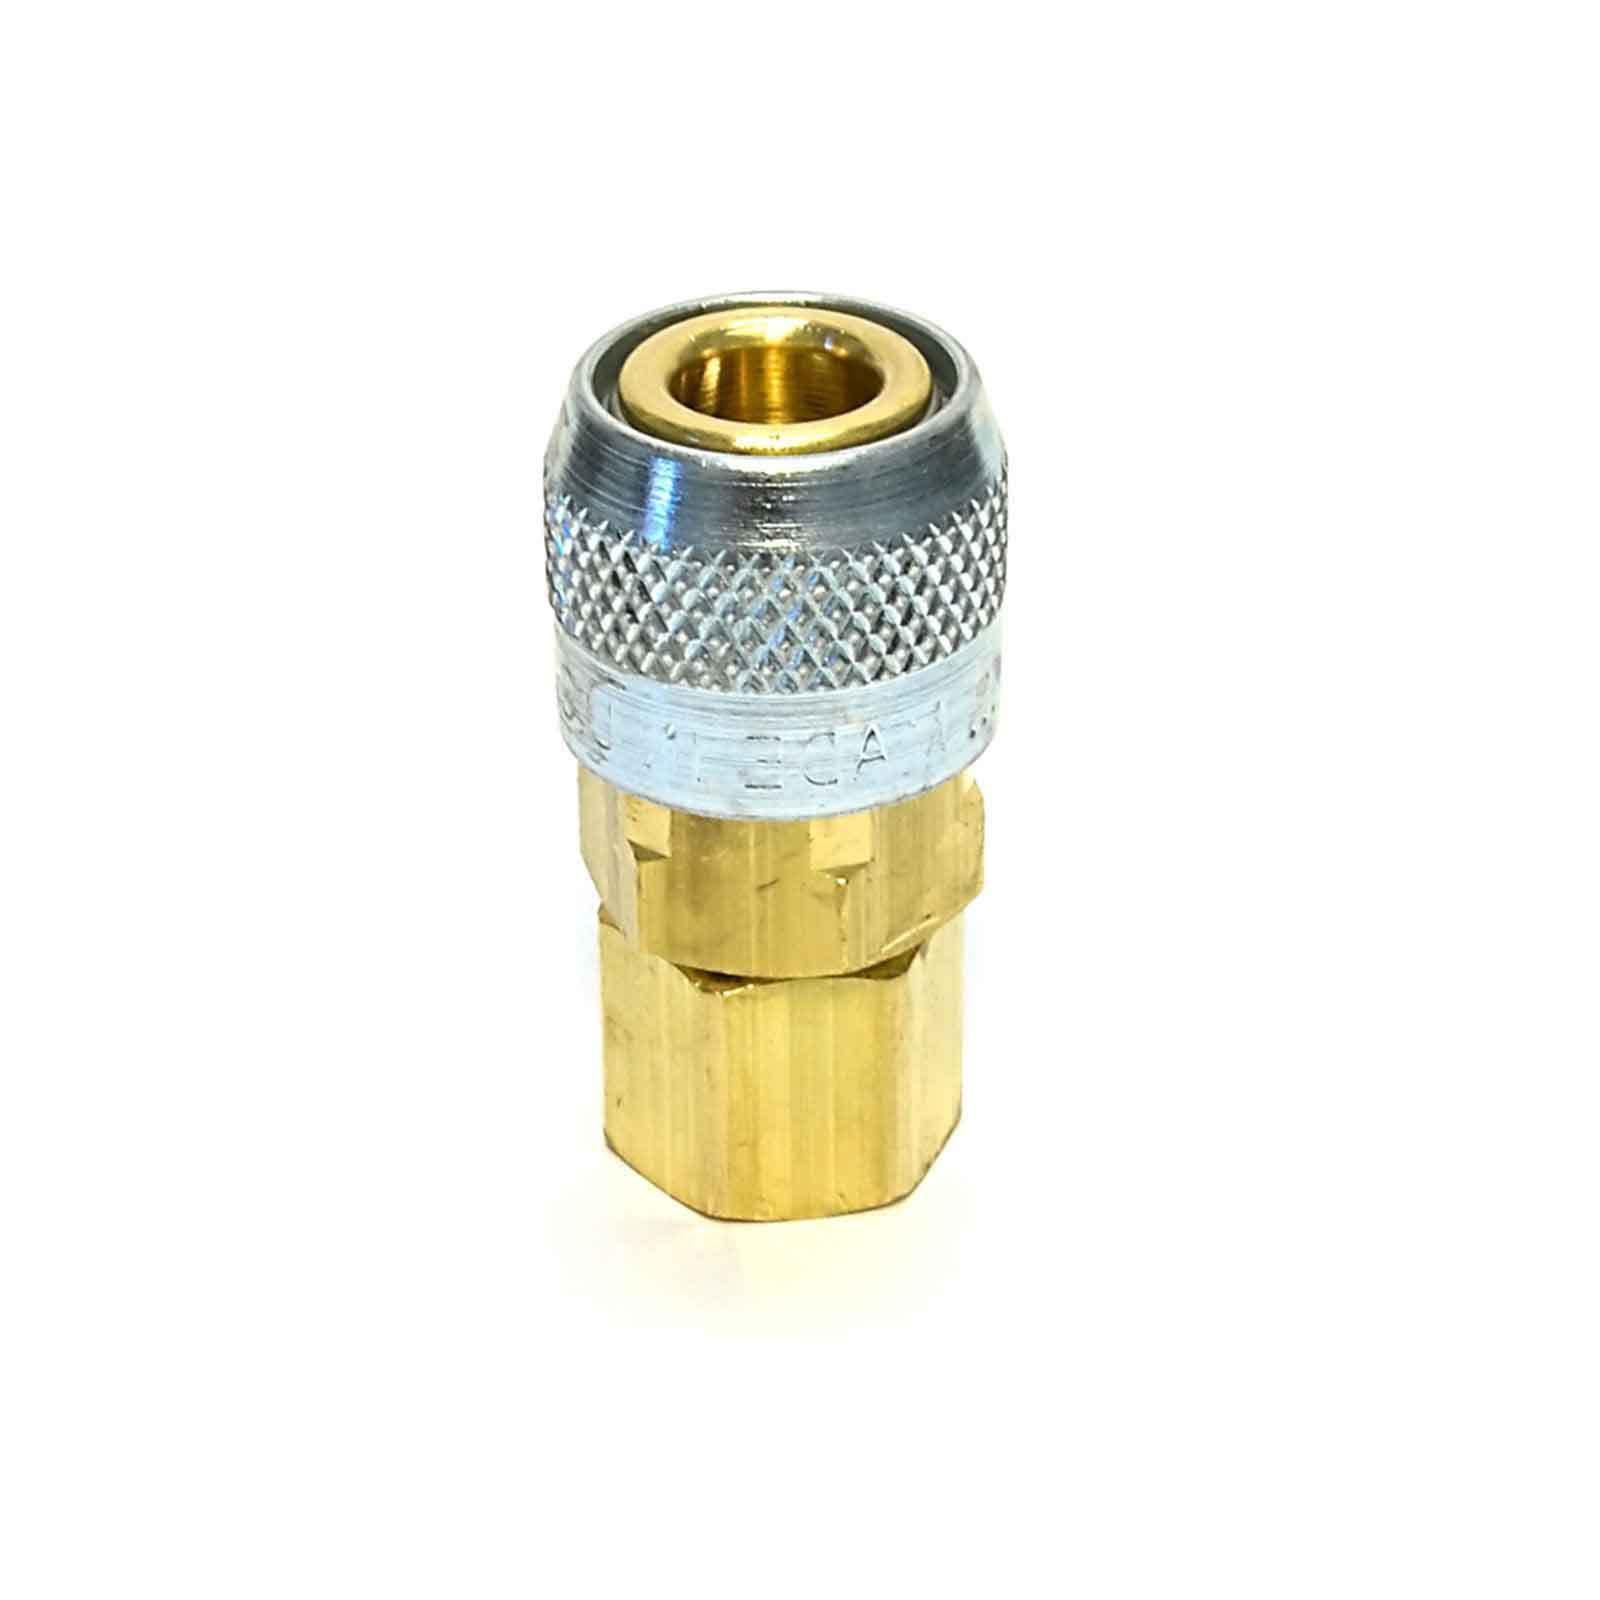 "ARO 210 - Air Hose Fittings 1/4"" NPT Automatic Coupler A Sty"